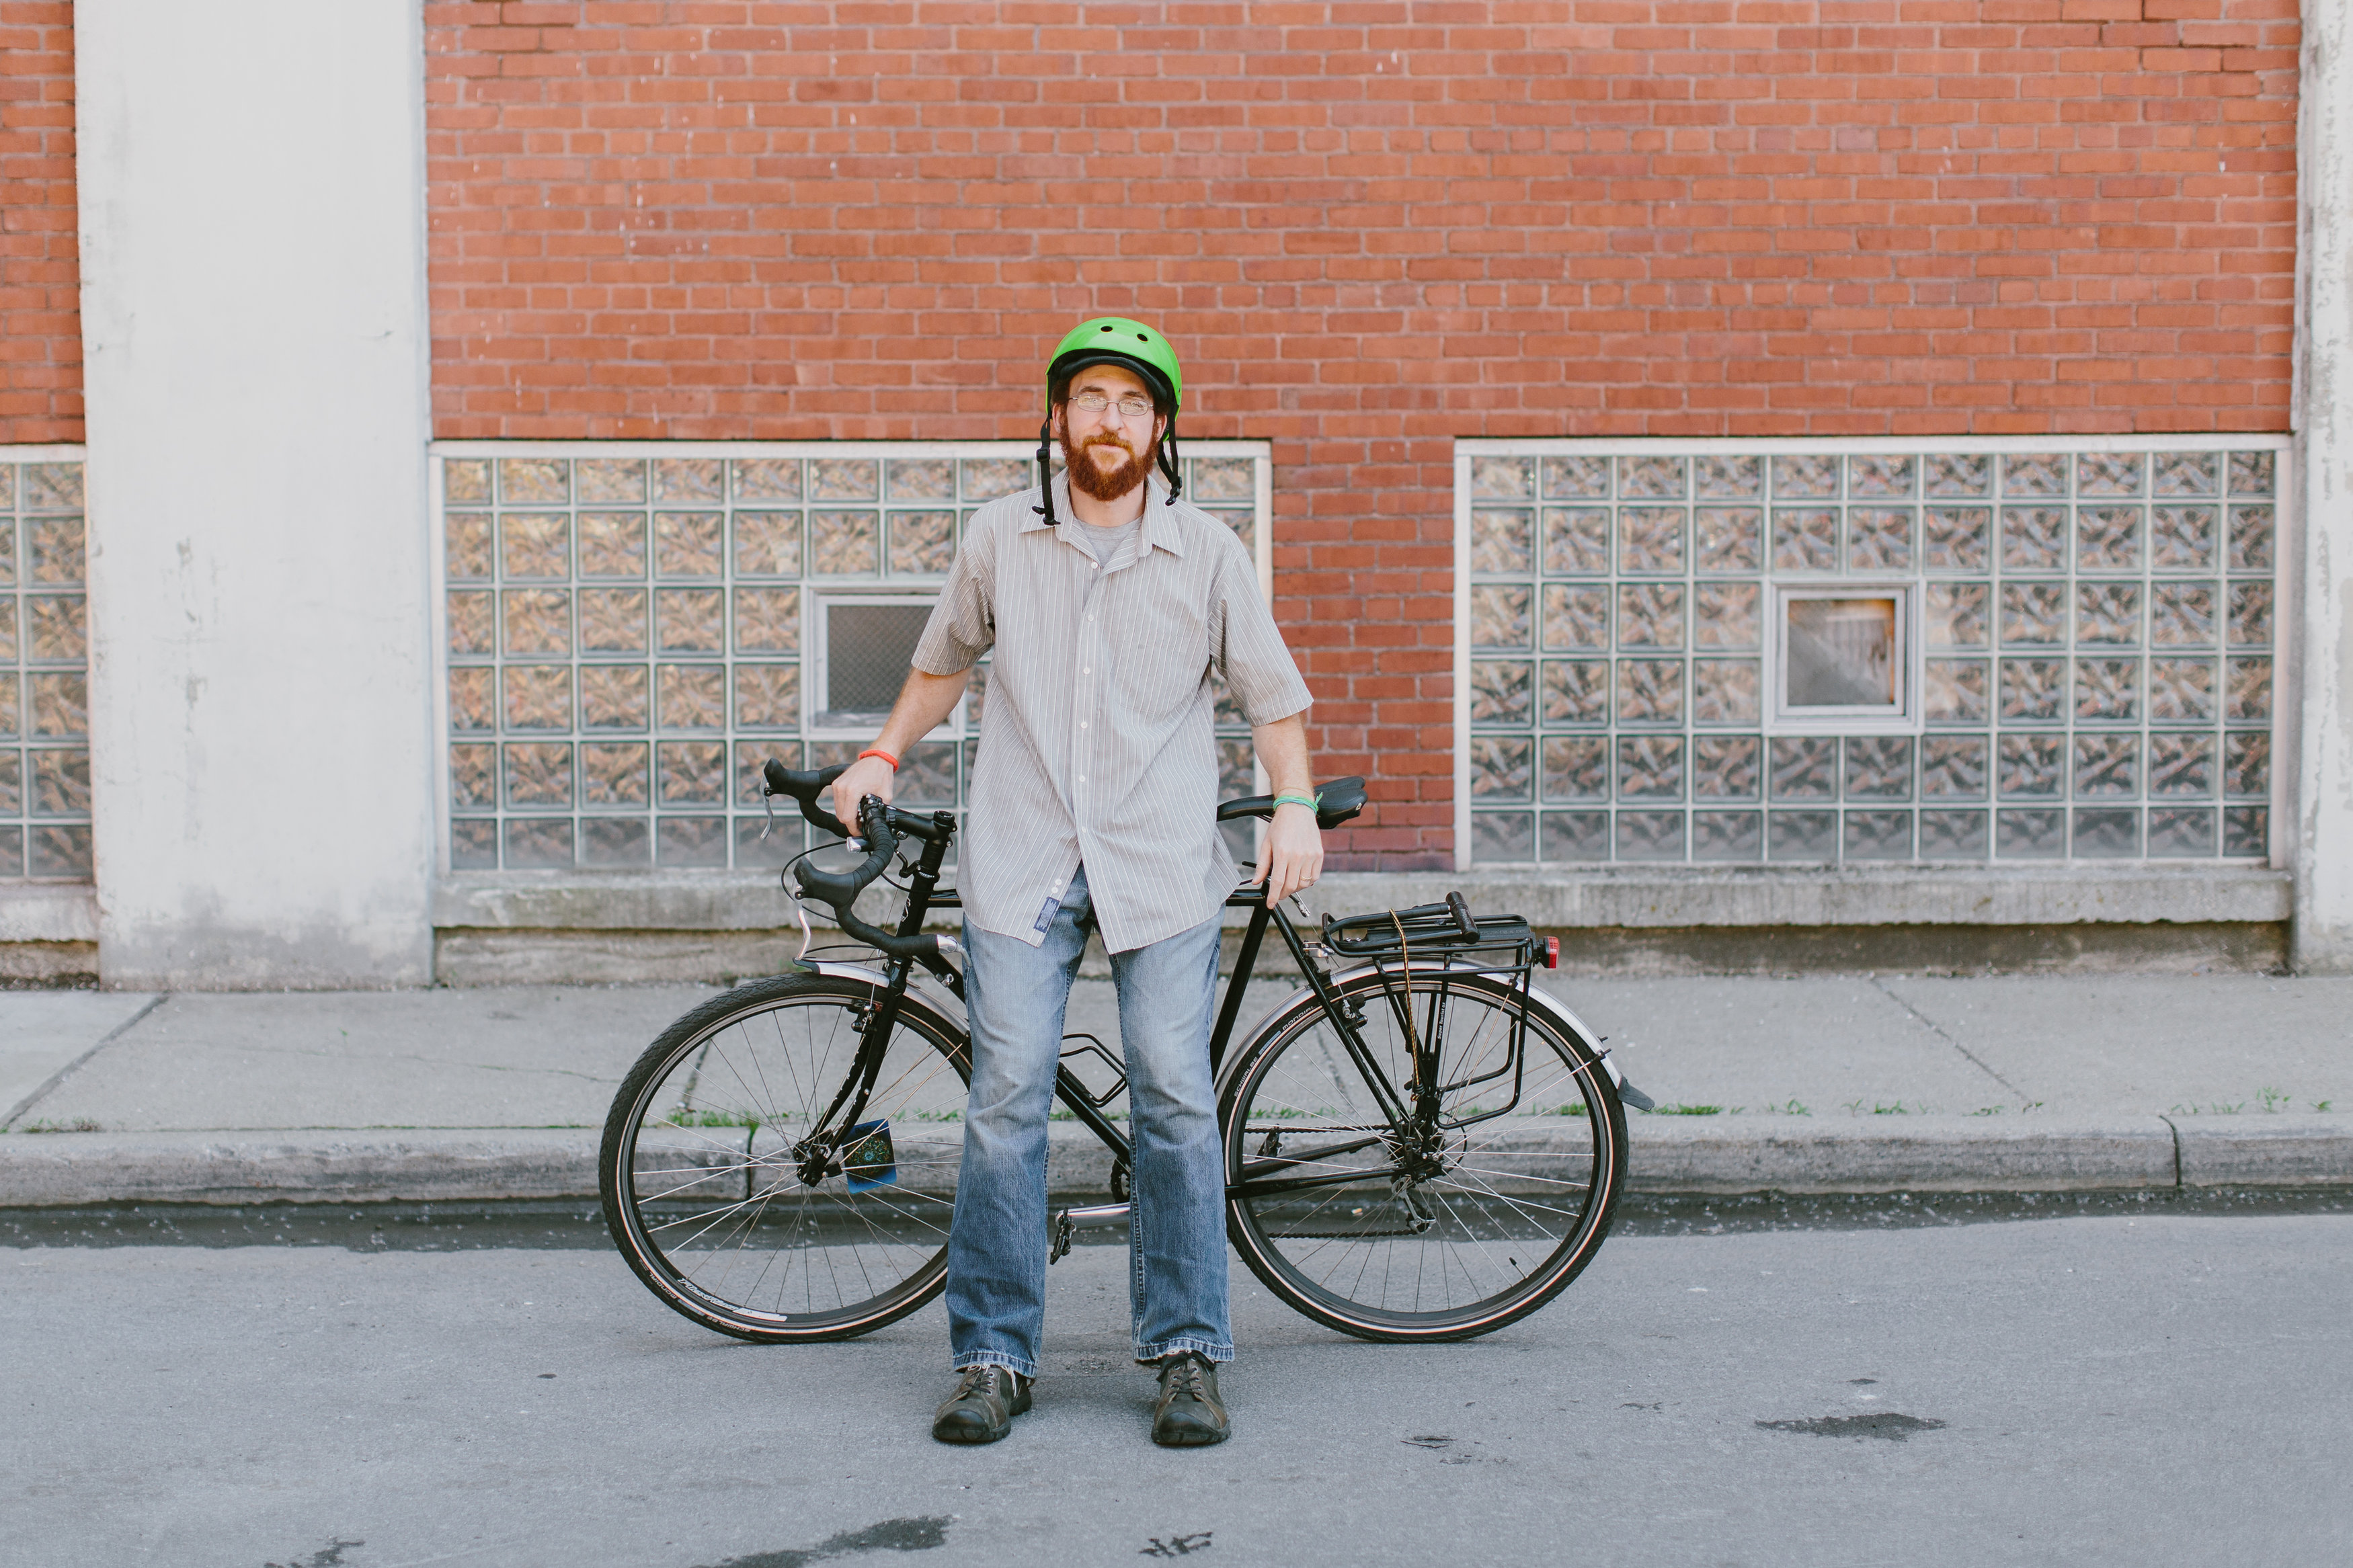 More than 50 events are listed on the GObikeBuffalo.org website, says Henry Raess, the nonprofits event manager. (Photo by Sam Insalaco)